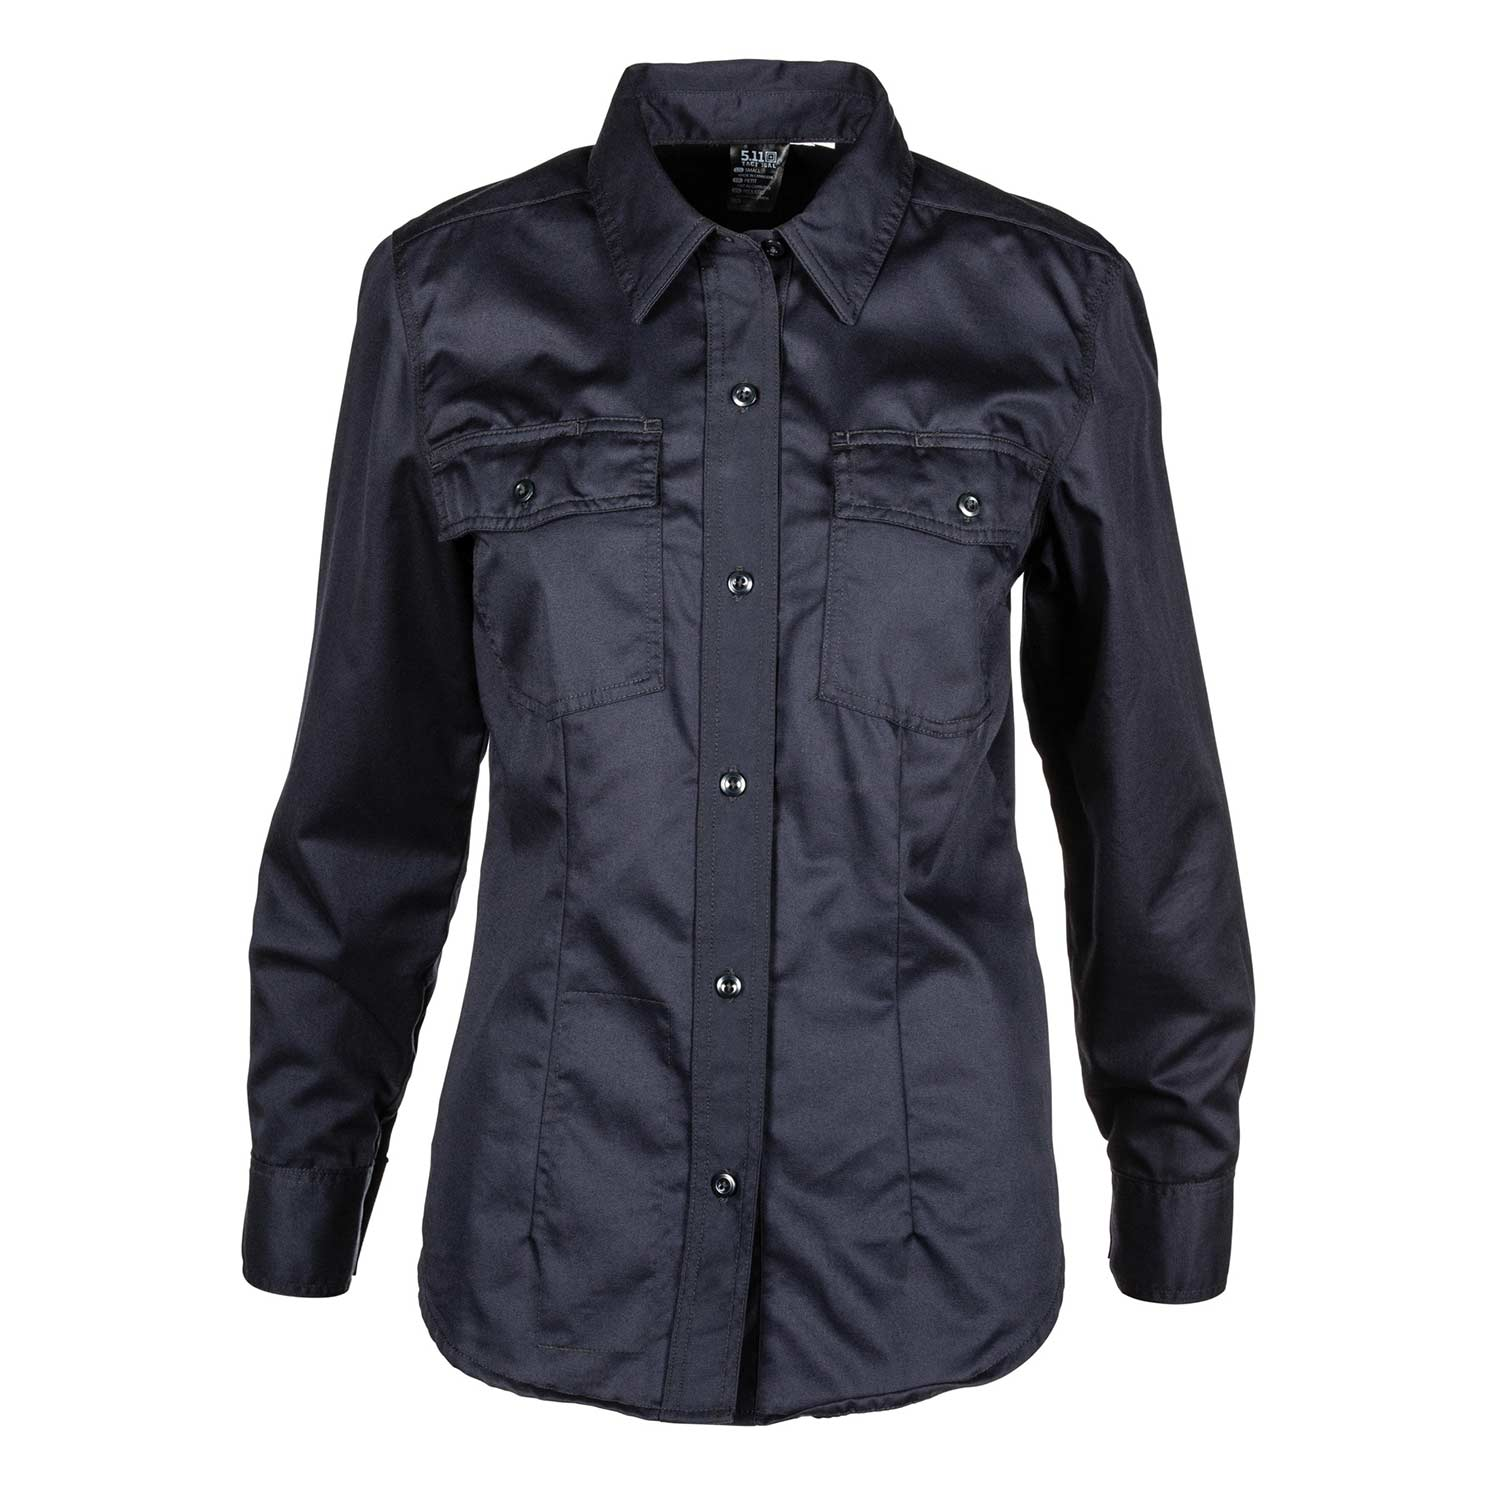 5.11 Tactical Womens Long Sleeve Company Shirt